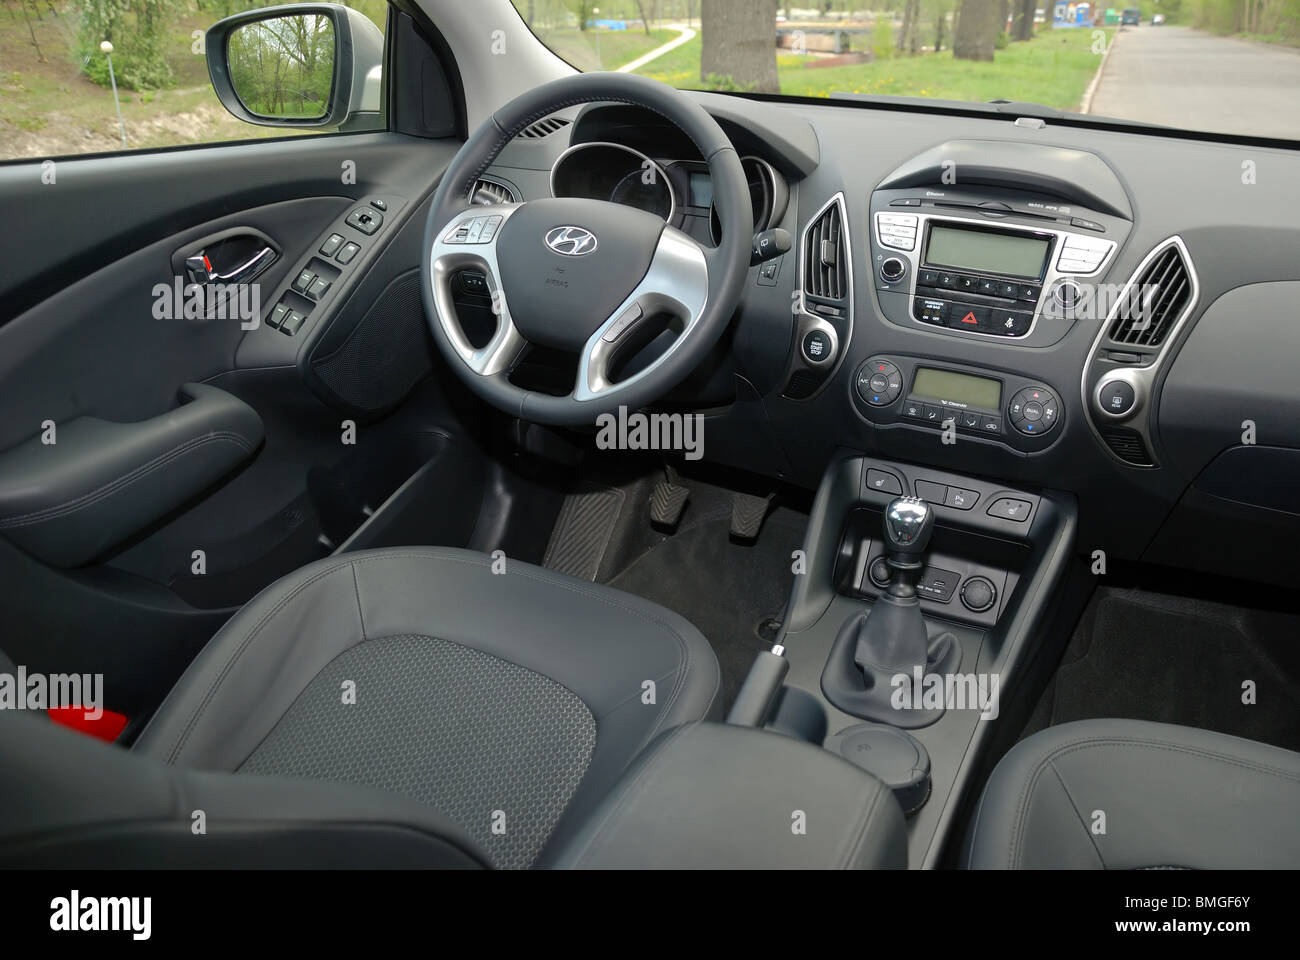 hyundai ix35 20 crdi 4x4 my 2010 beige metallic korean popular compact suv interior cockpit dashboard console